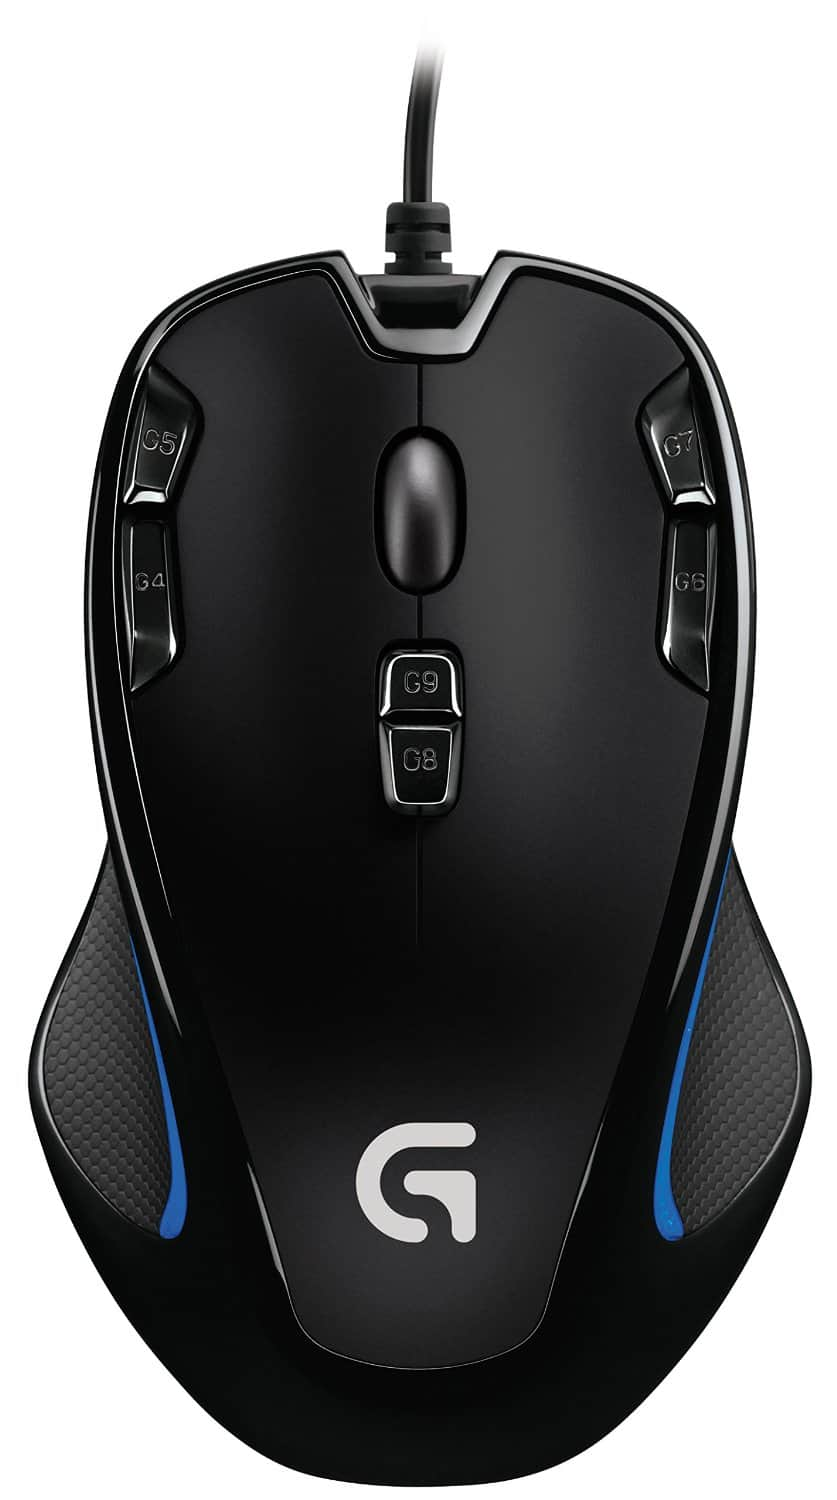 Logitech G300s Optical Gaming Mouse  $20 + Free Store Pickup